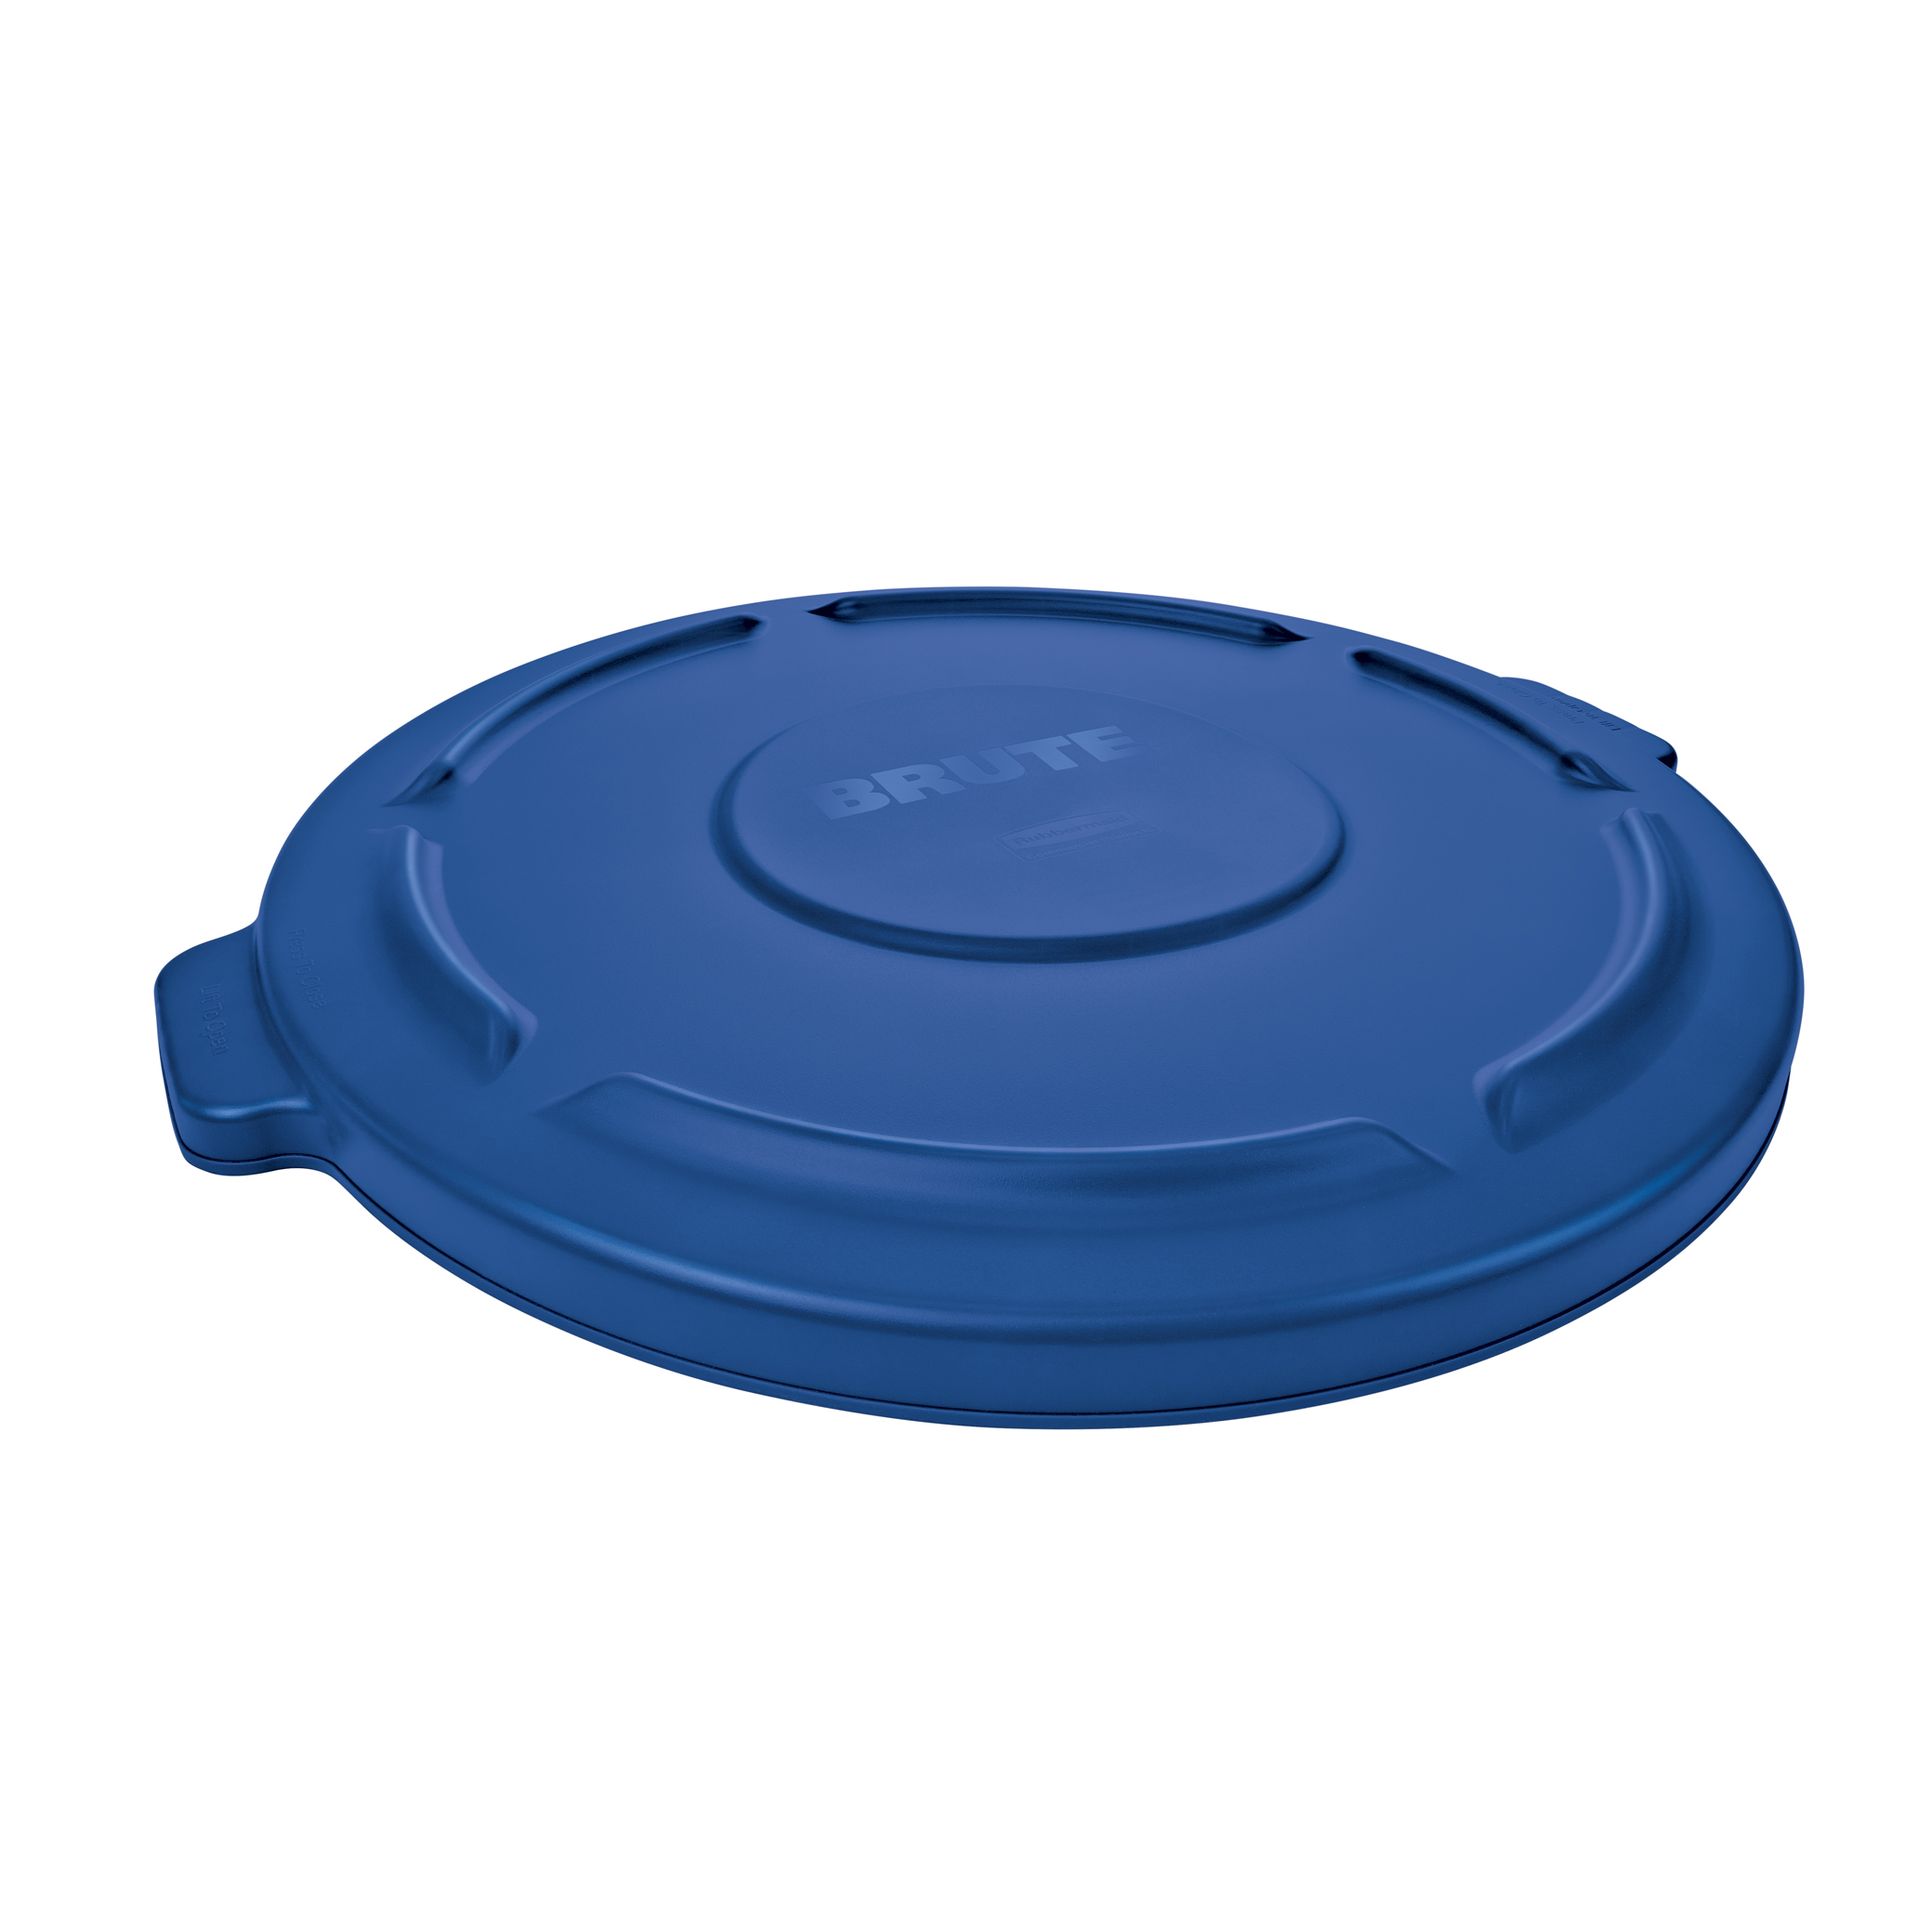 Rubbermaid Commercial Products 1779731 trash receptacle lid / top